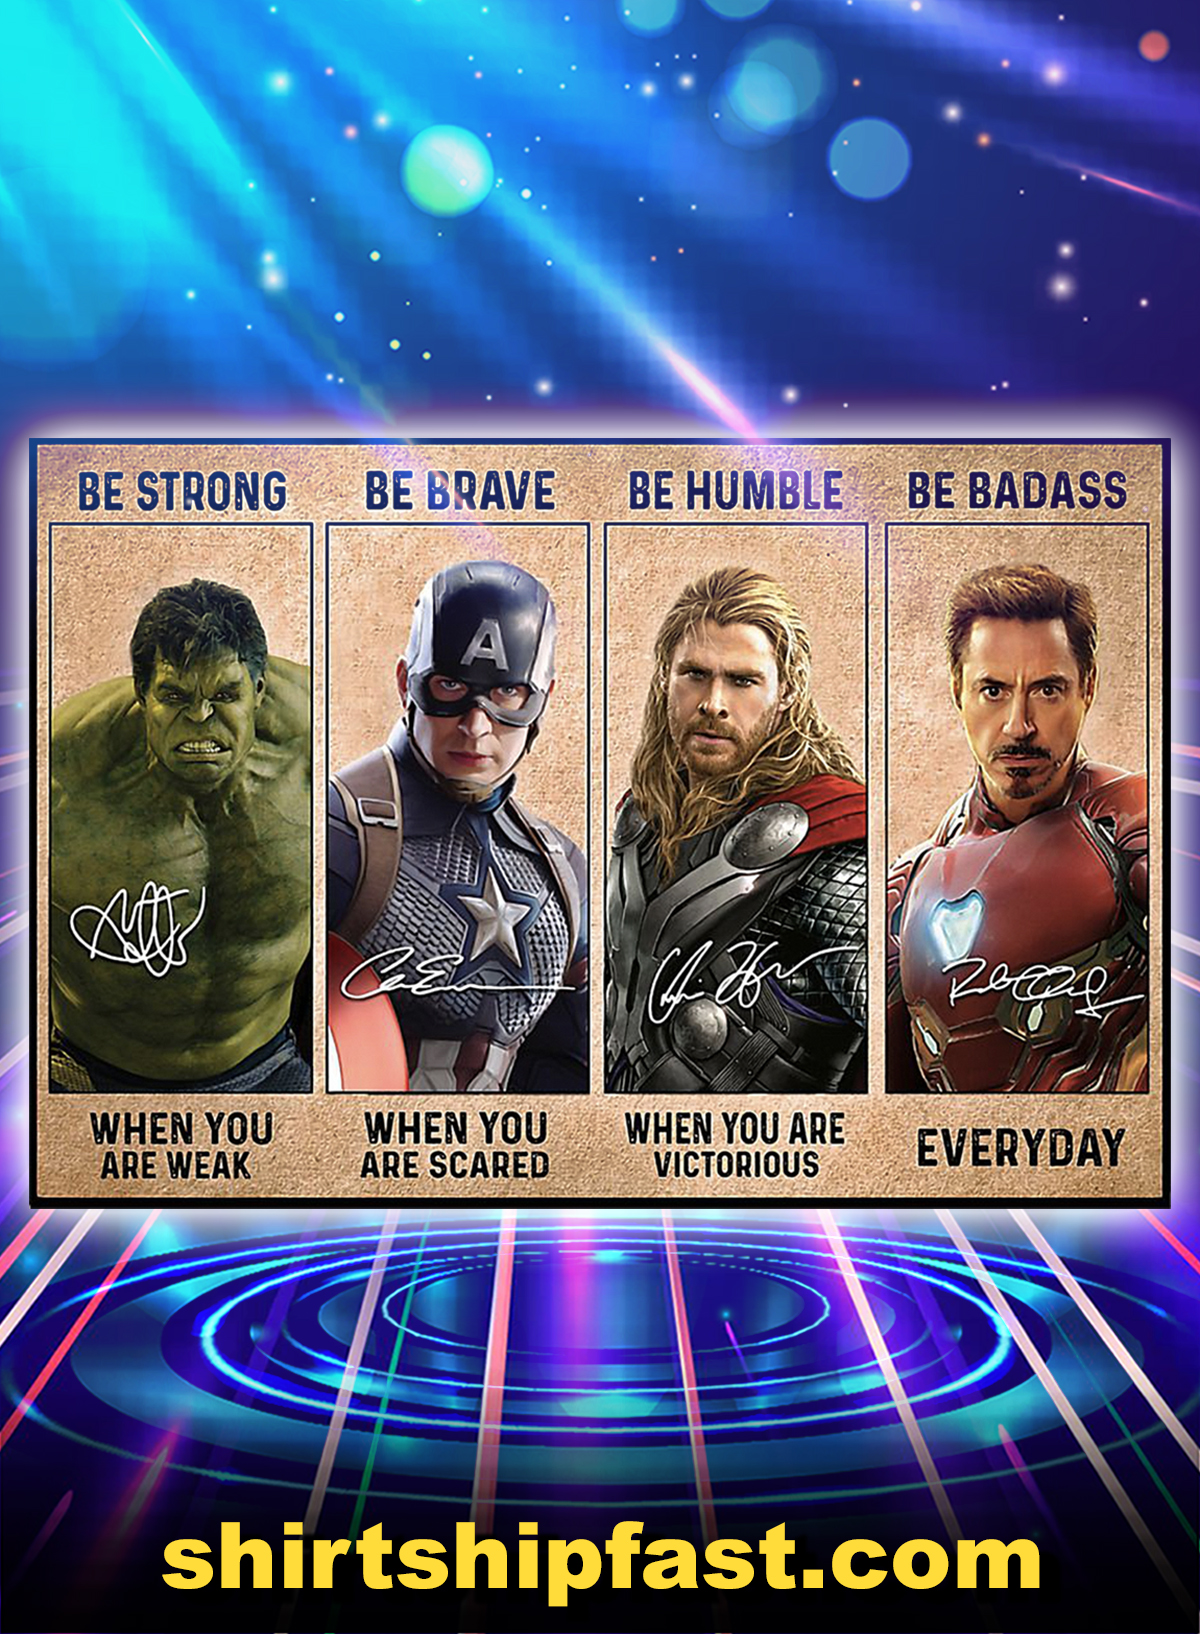 Be strong be brave be humble be badass avengers poster - A1